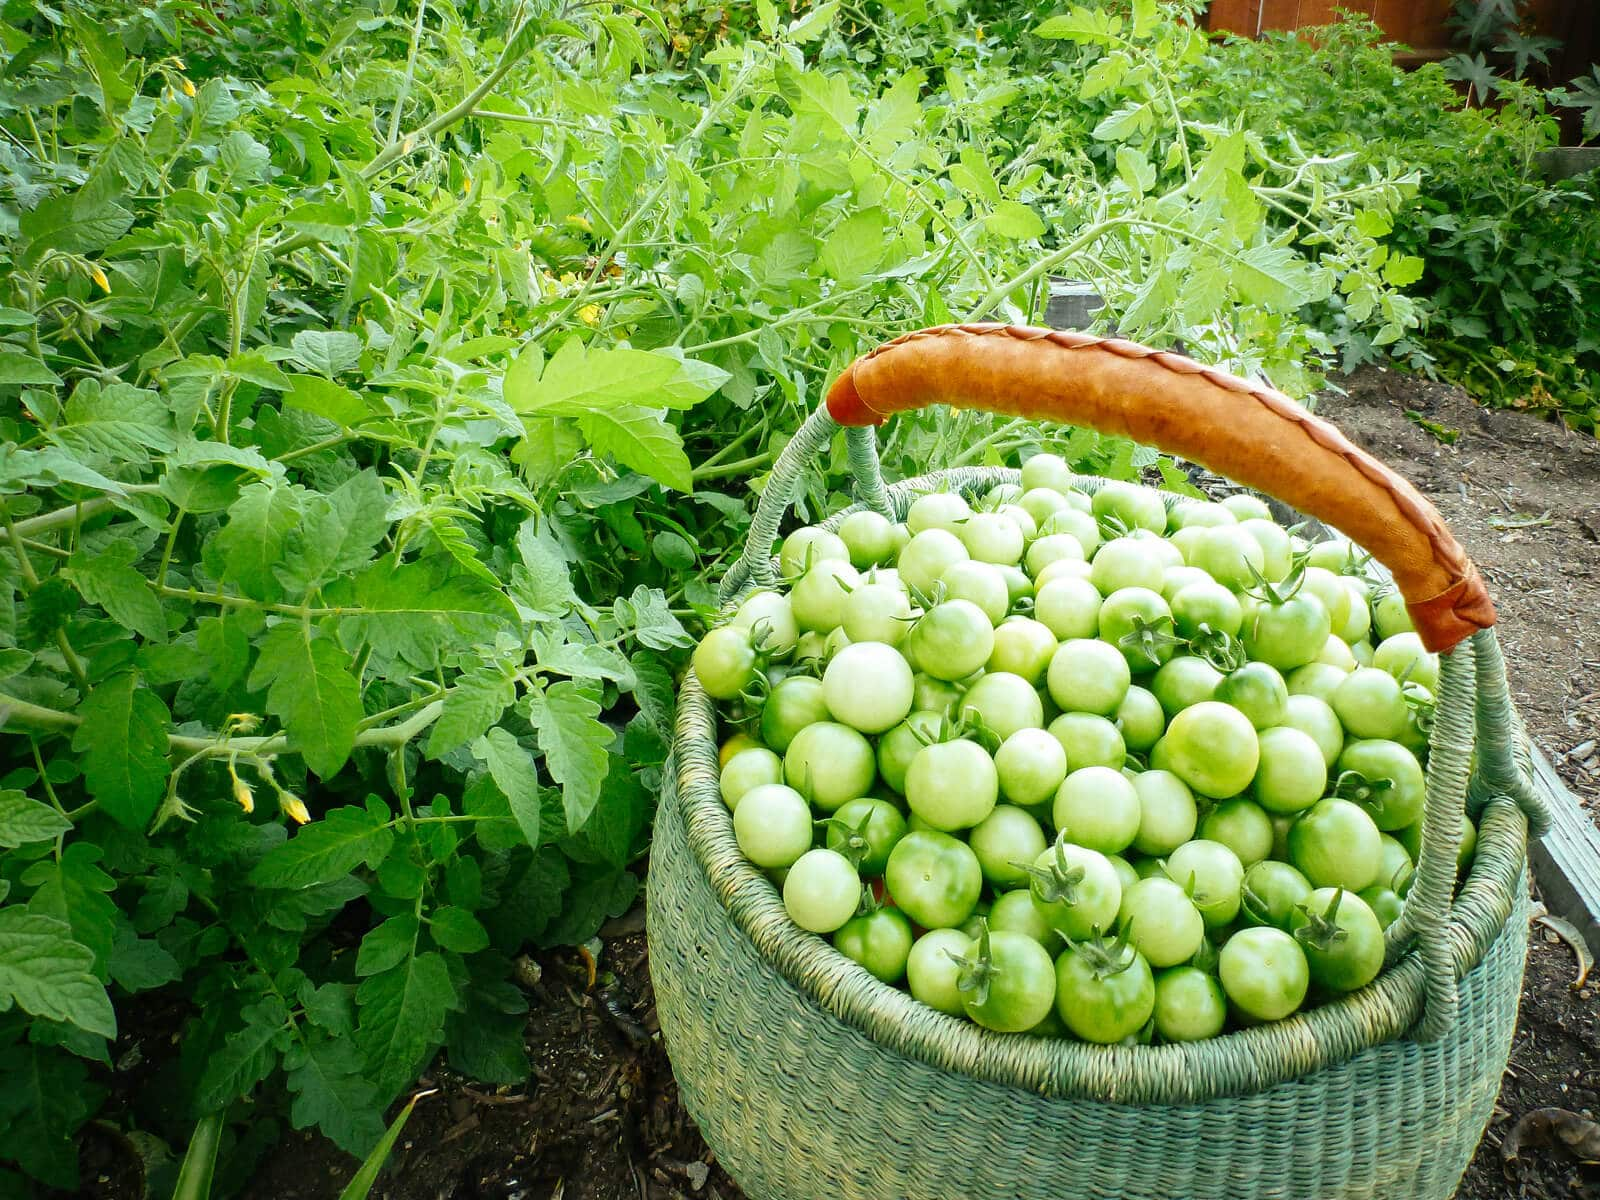 Wash and dry your green tomatoes